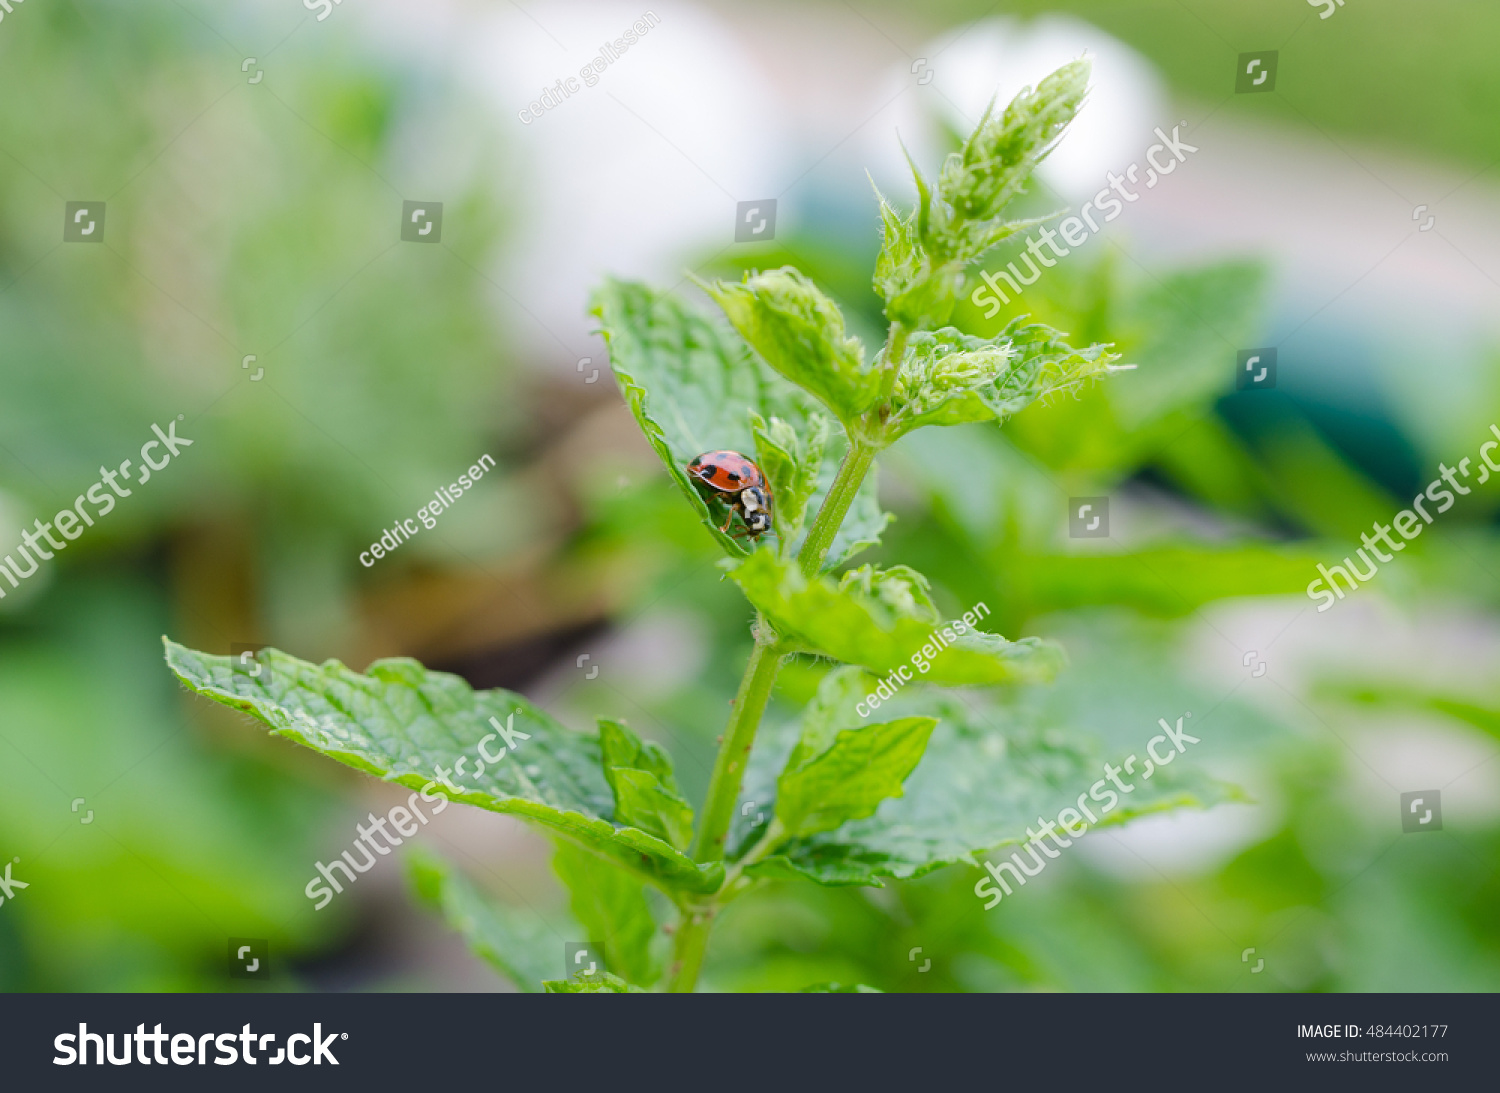 how to get rid of aphids on mint